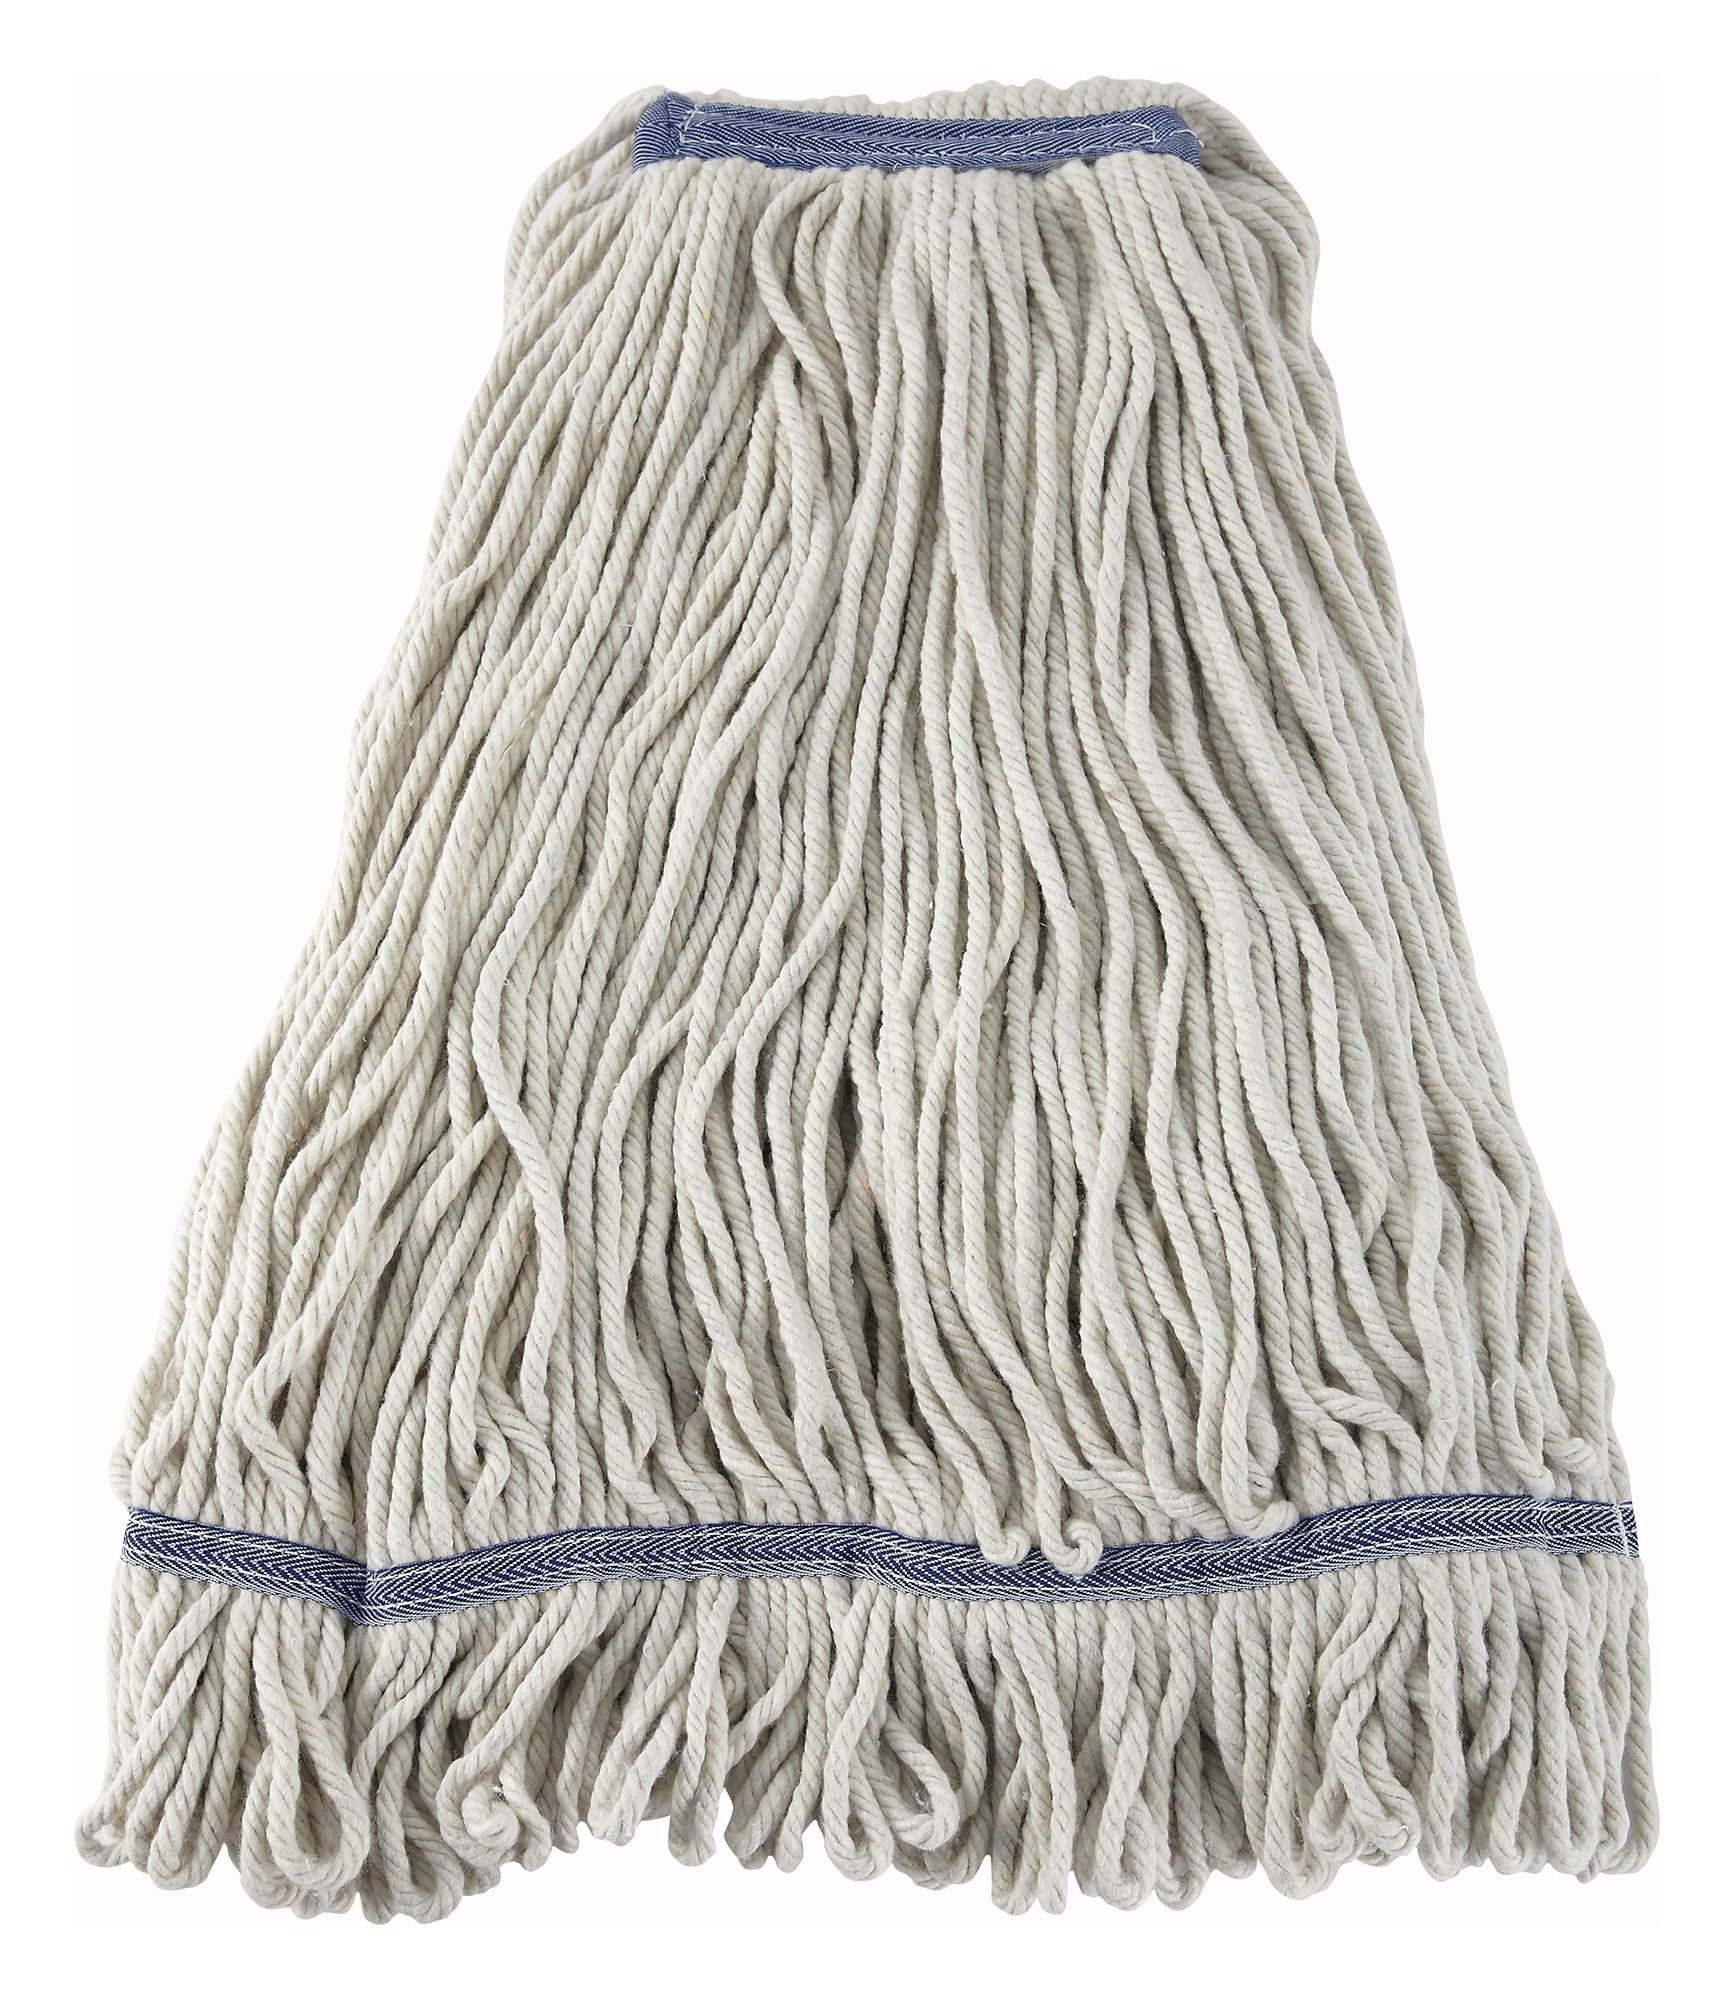 Winco MOP-32W White Yarn Looped-End Wet Mop Head 800g 32 oz.